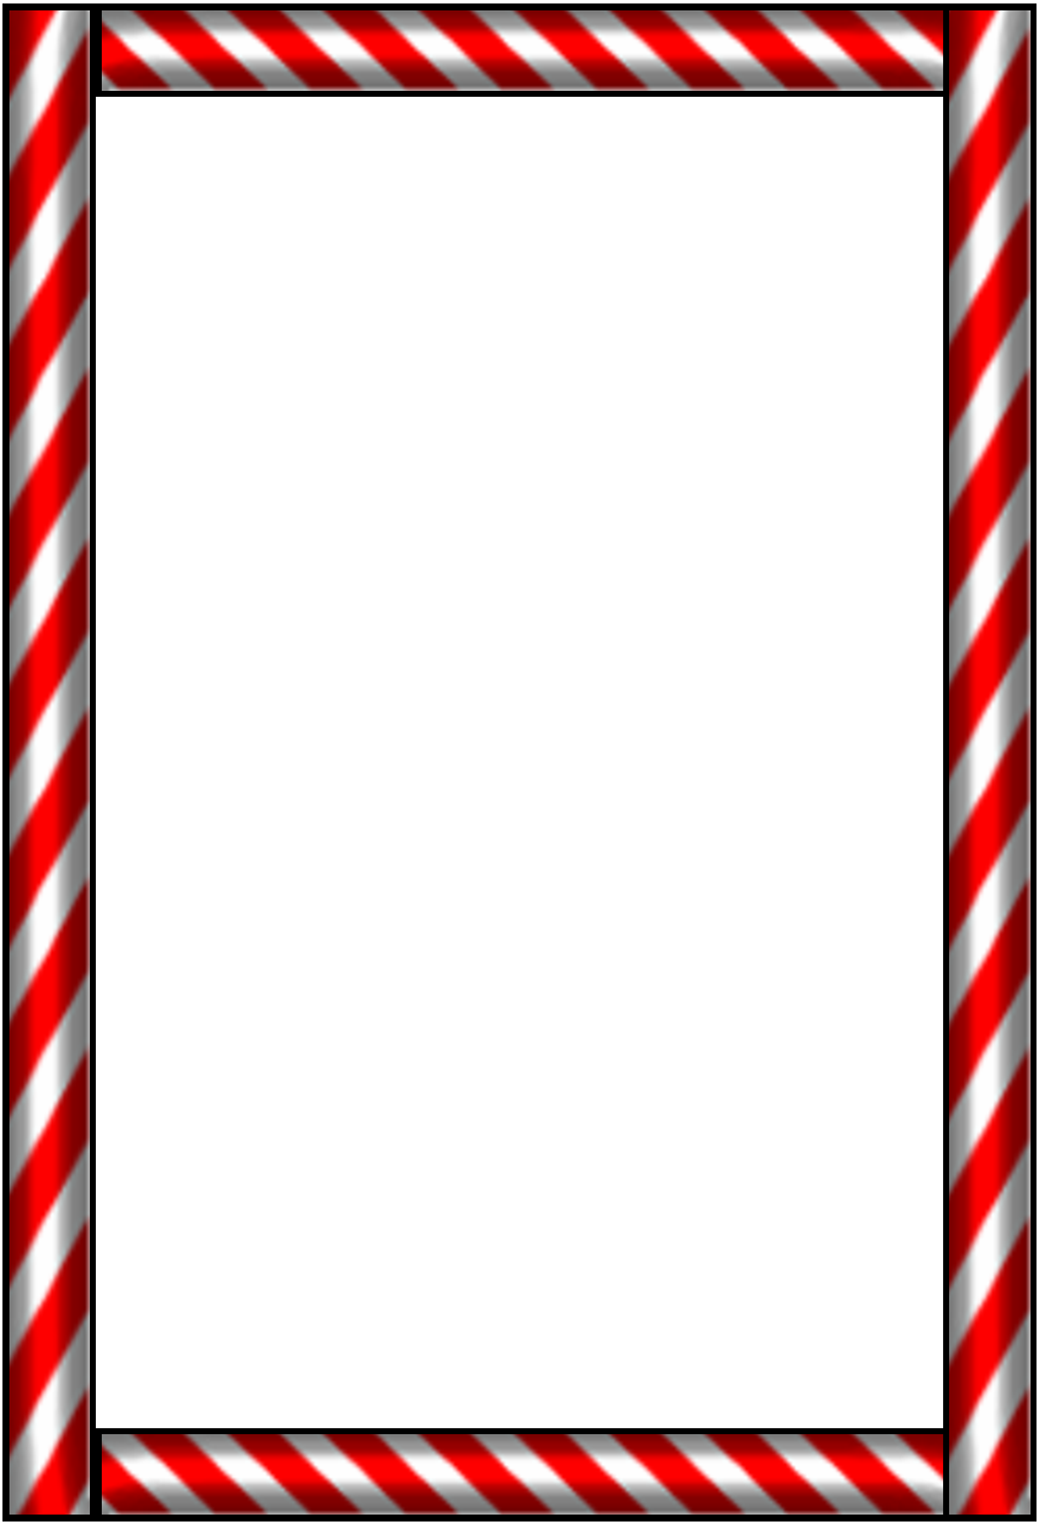 Candy cane clip art borders google search christmas for Weihnachtskugeln transparent